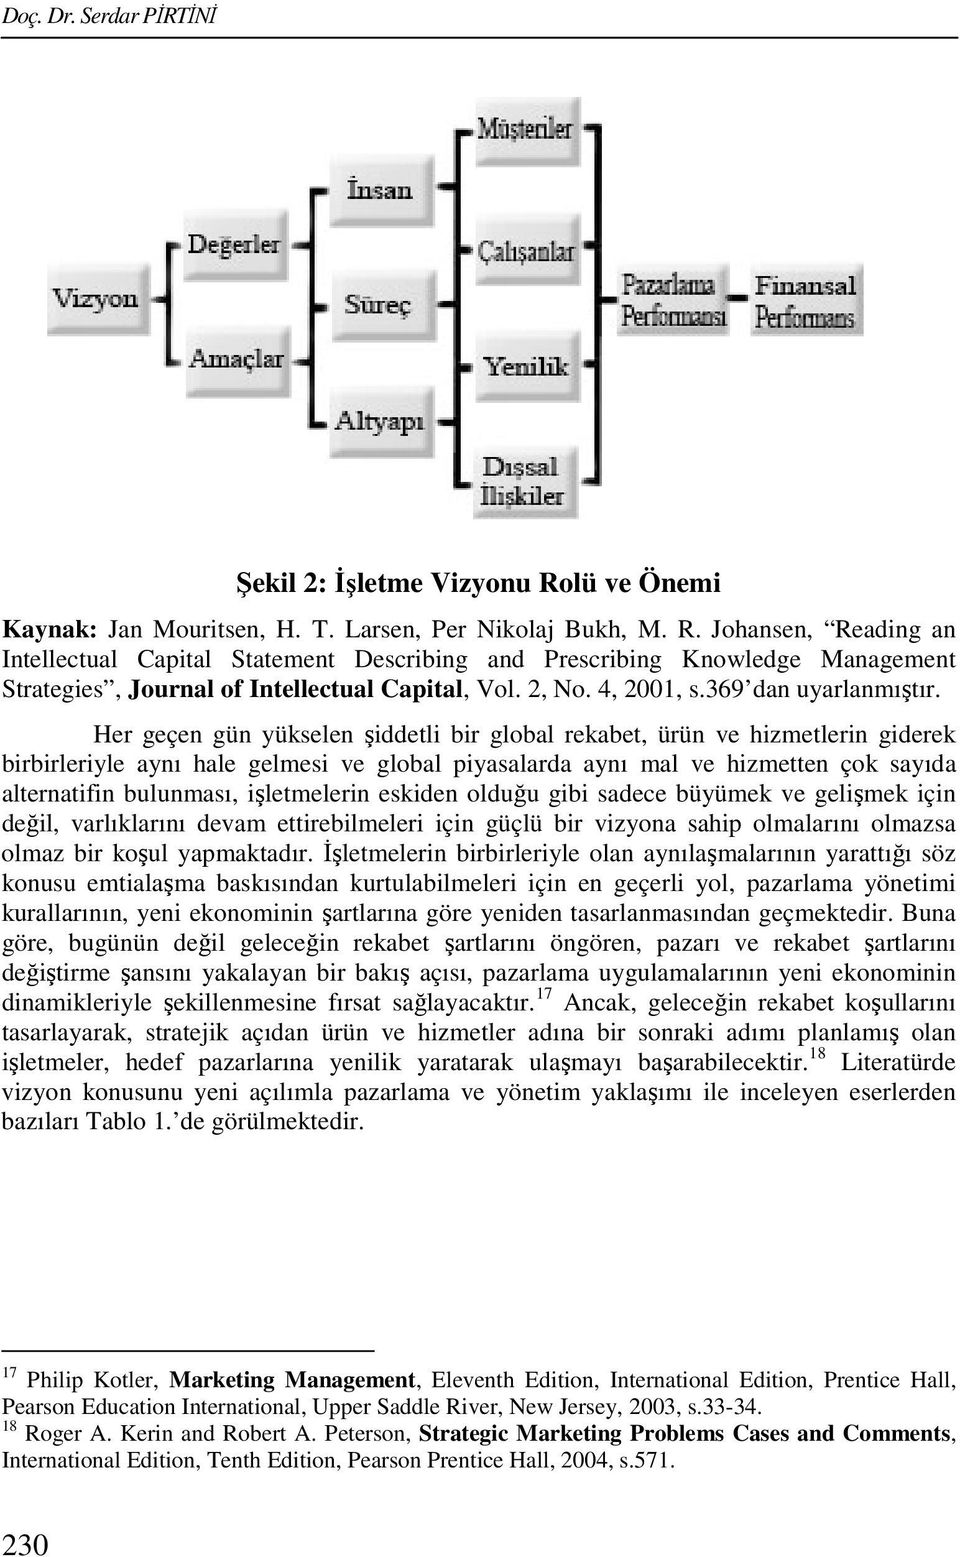 Johansen, Reading an Intellectual Capital Statement Describing and Prescribing Knowledge Management Strategies, Journal of Intellectual Capital, Vol. 2, No. 4, 2001, s.369 dan uyarlanmıştır.